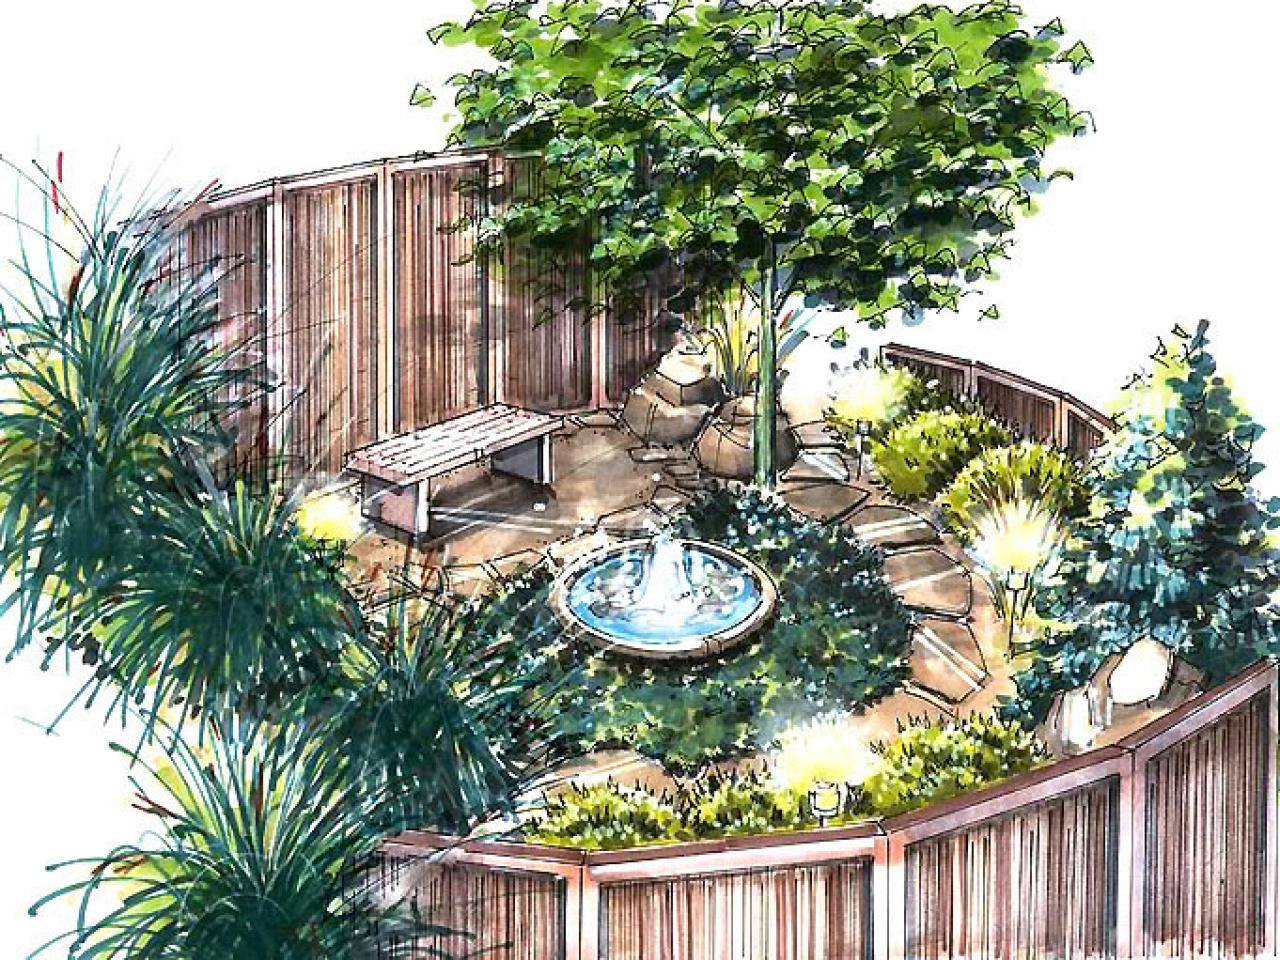 A meditation garden plan hgtv for Japanese meditation garden